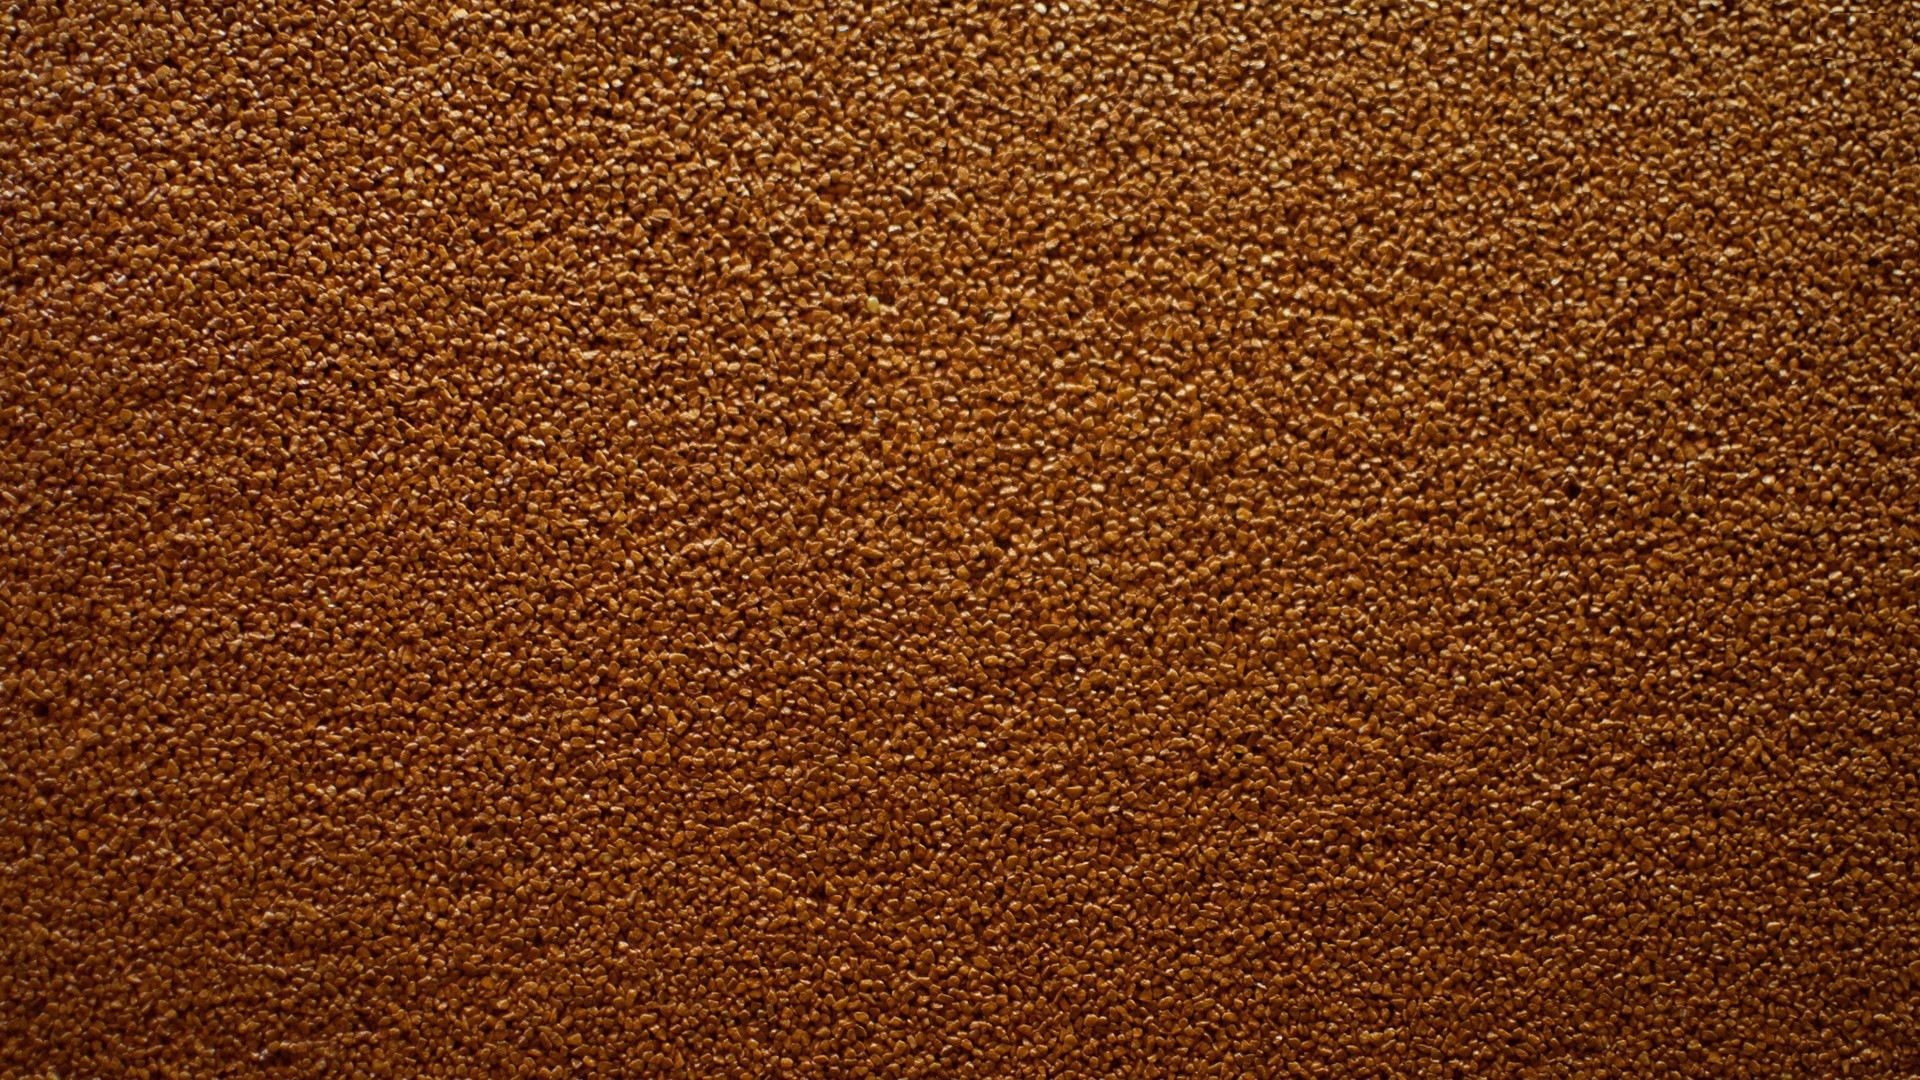 Res: 1920x1080, Brown wall HD photography wallpaper.